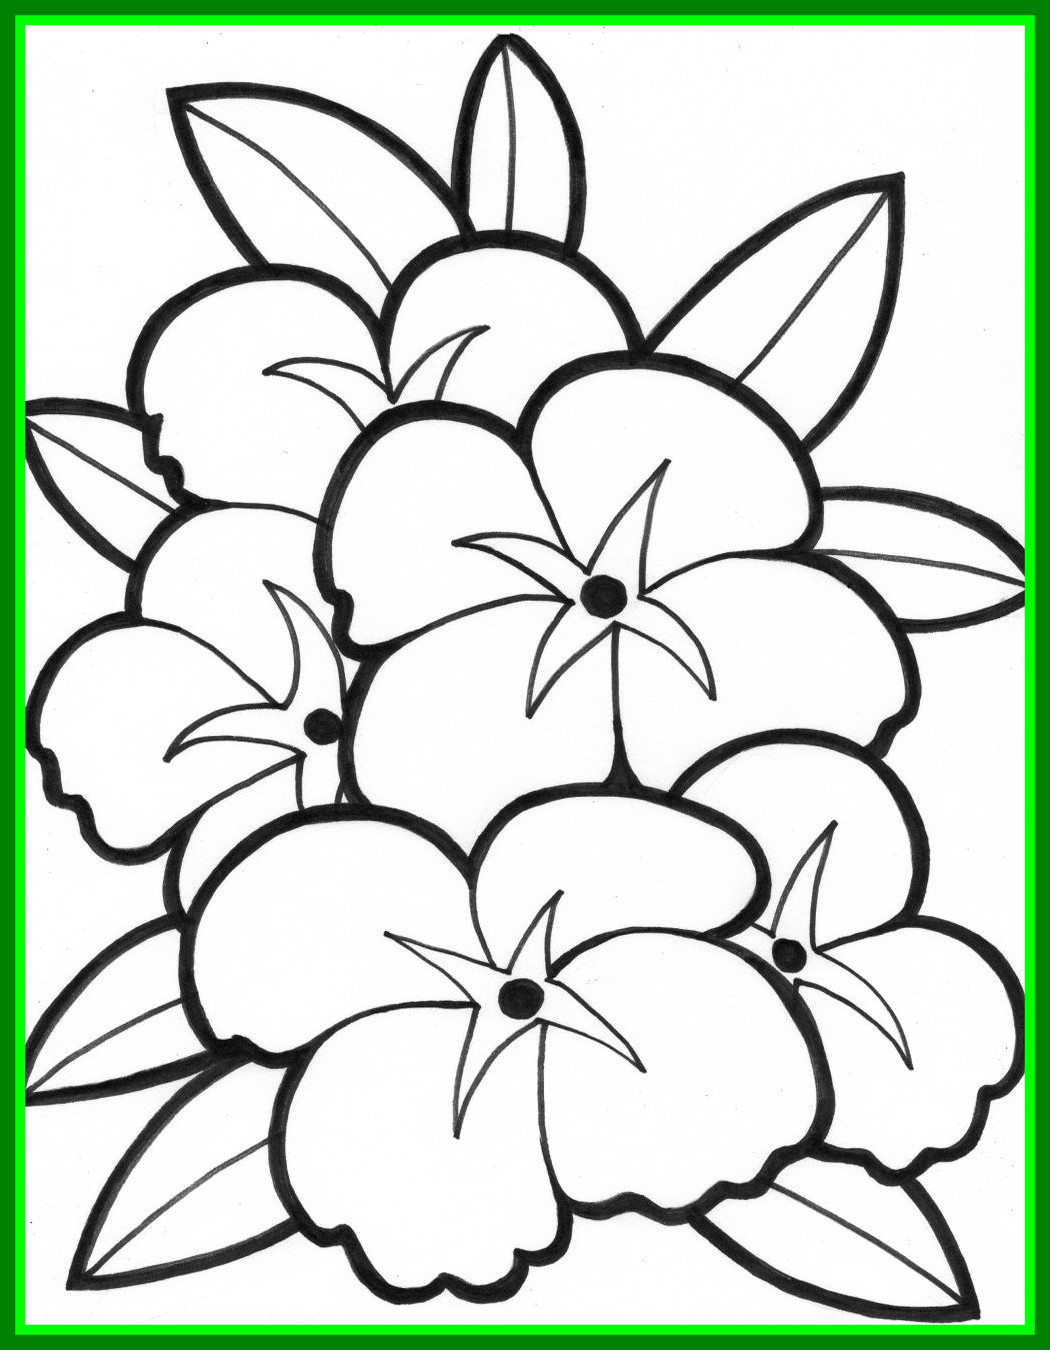 Summer Colouring Pages For Preschool at GetDrawings.com | Free for ...